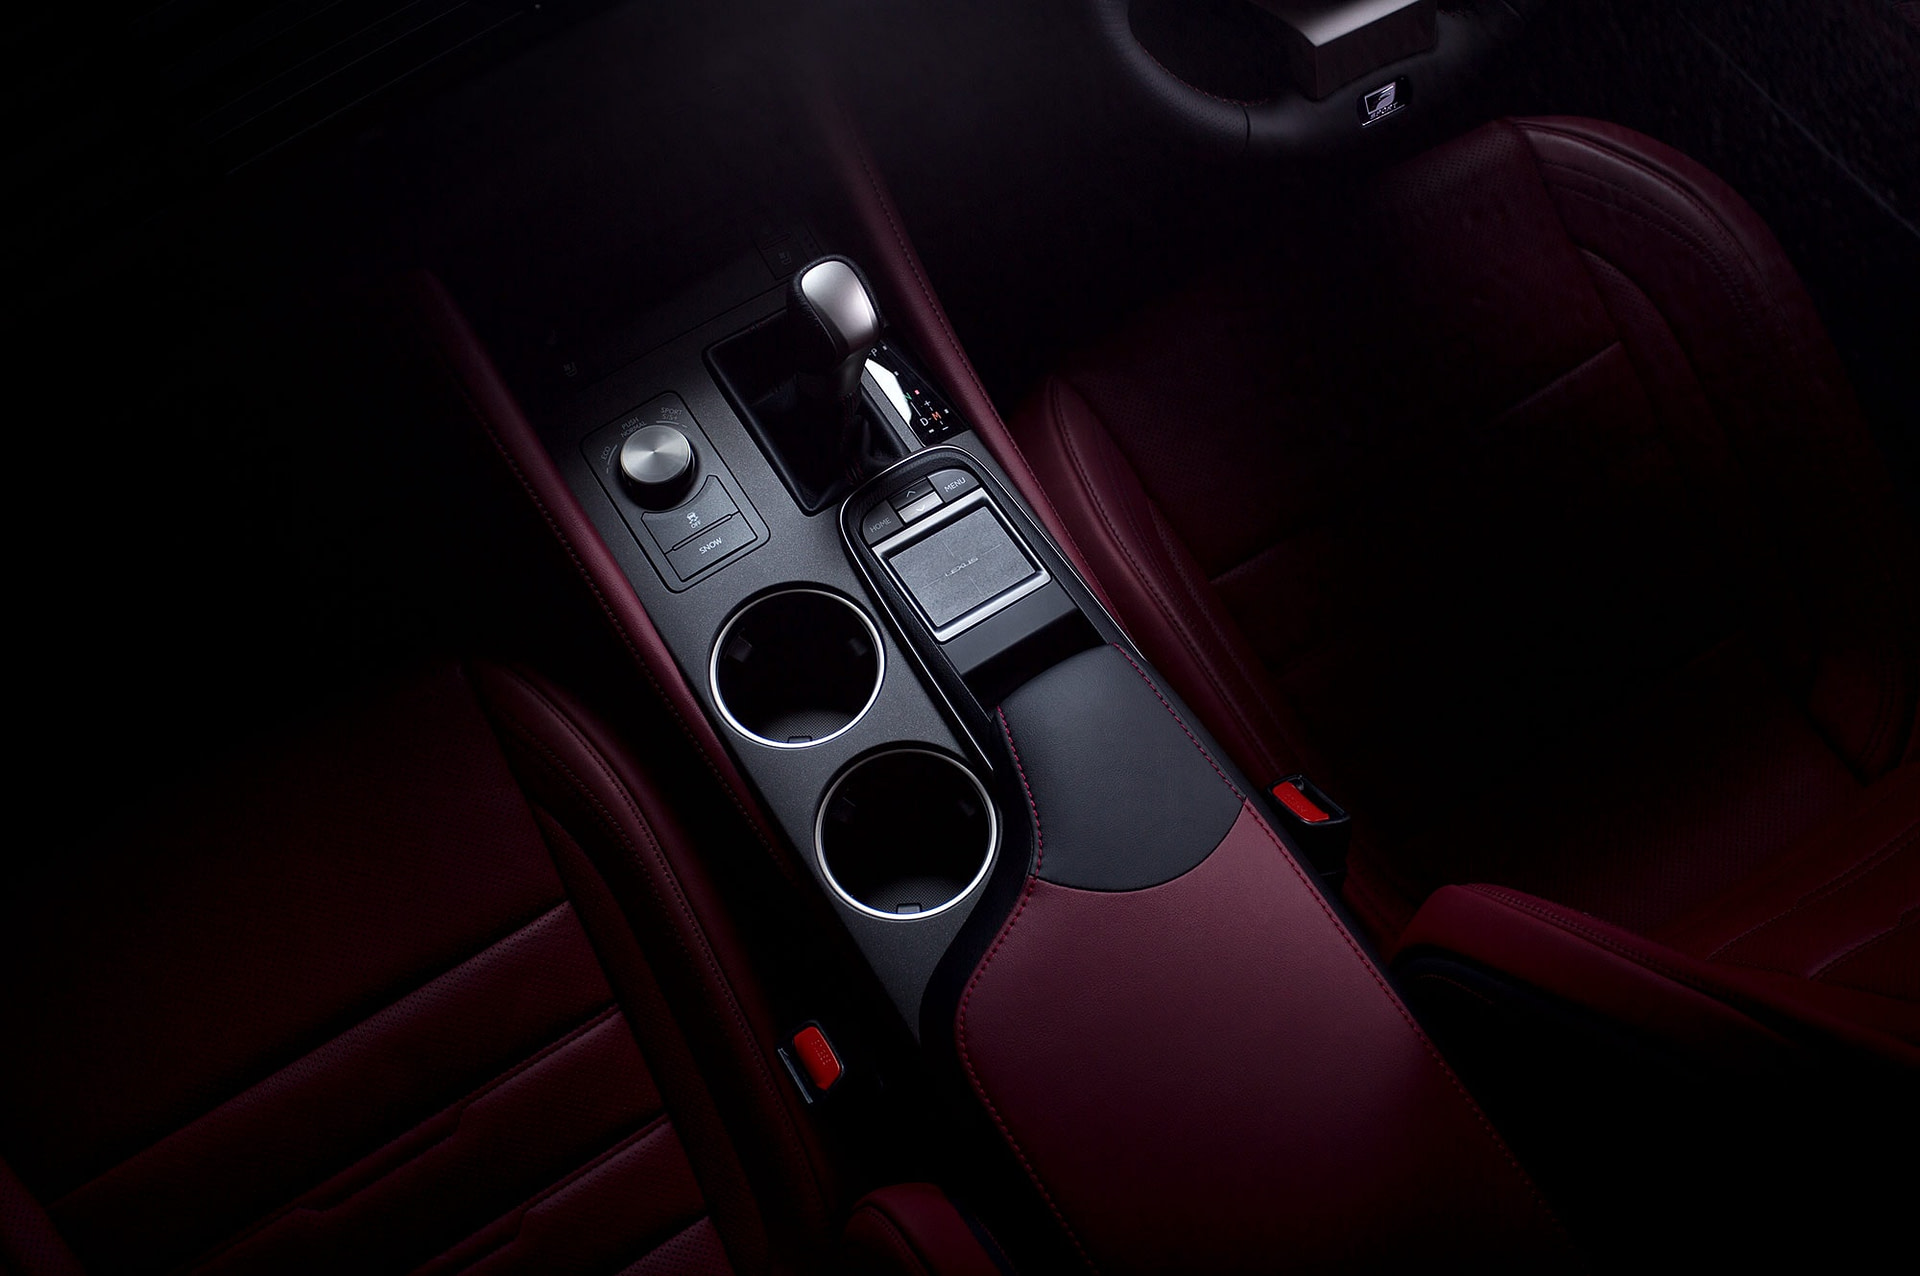 car photography of the latest lexus rc 350 sports coupe photographed in studio using the nikon d810